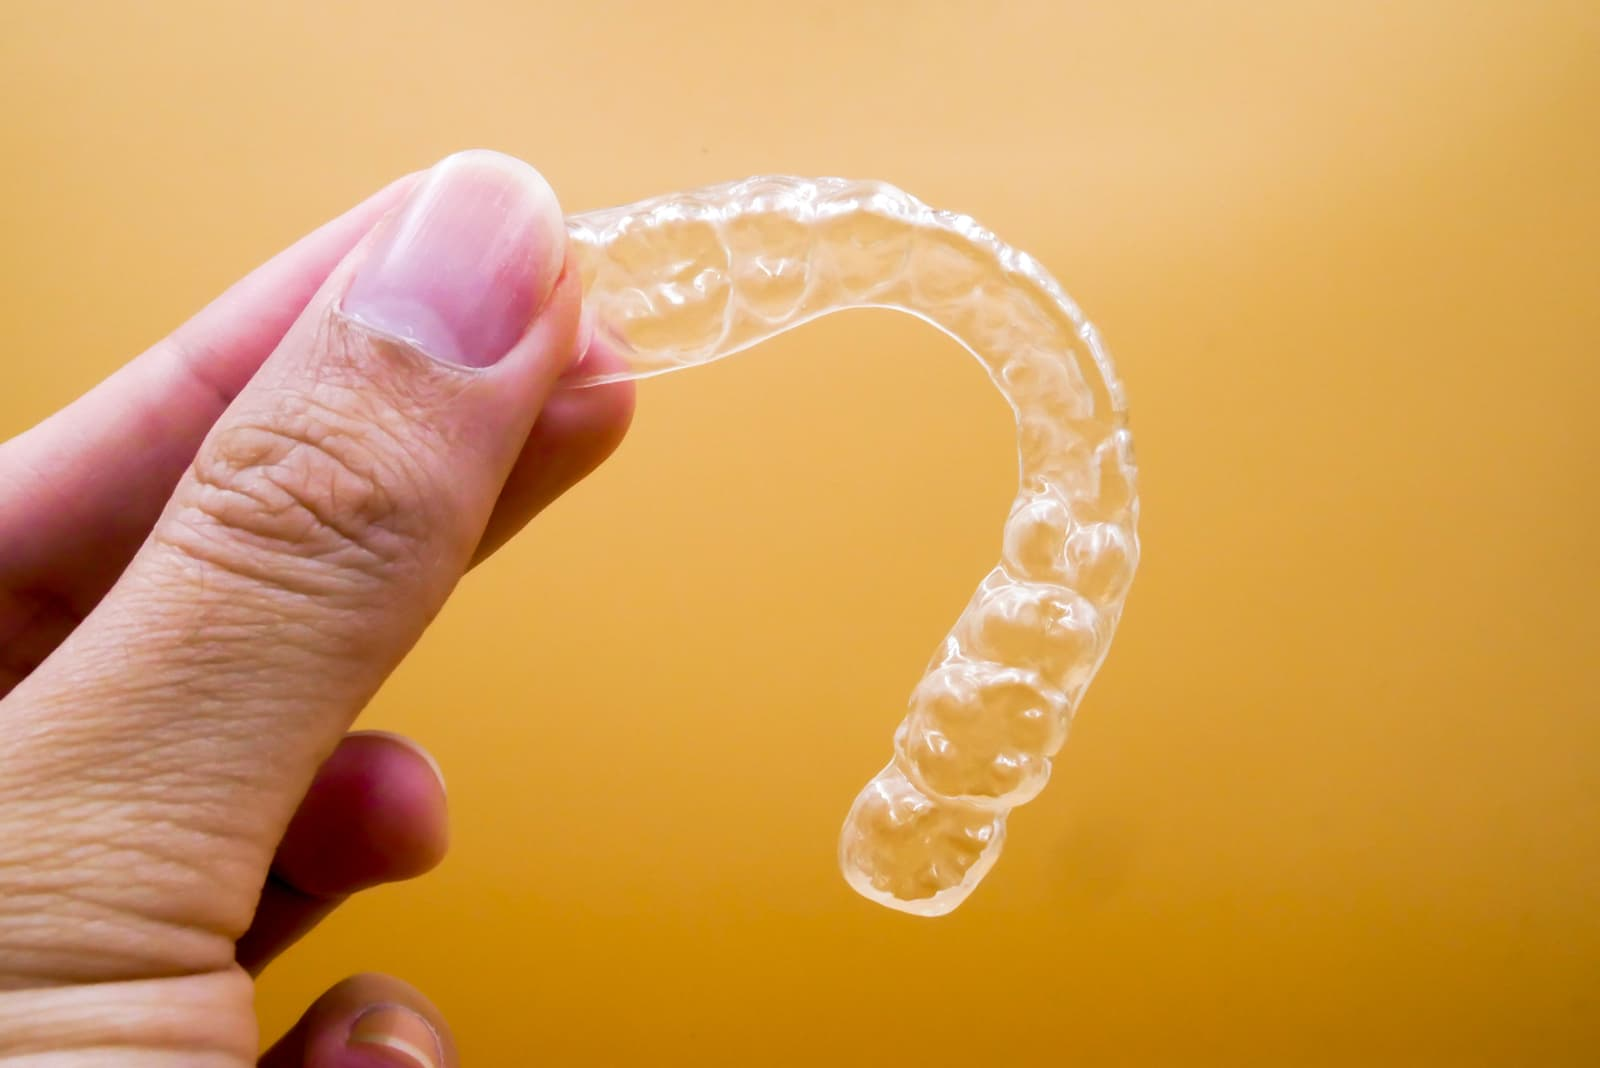 Invisalign - The Holistic Approach for Straighter Teeth